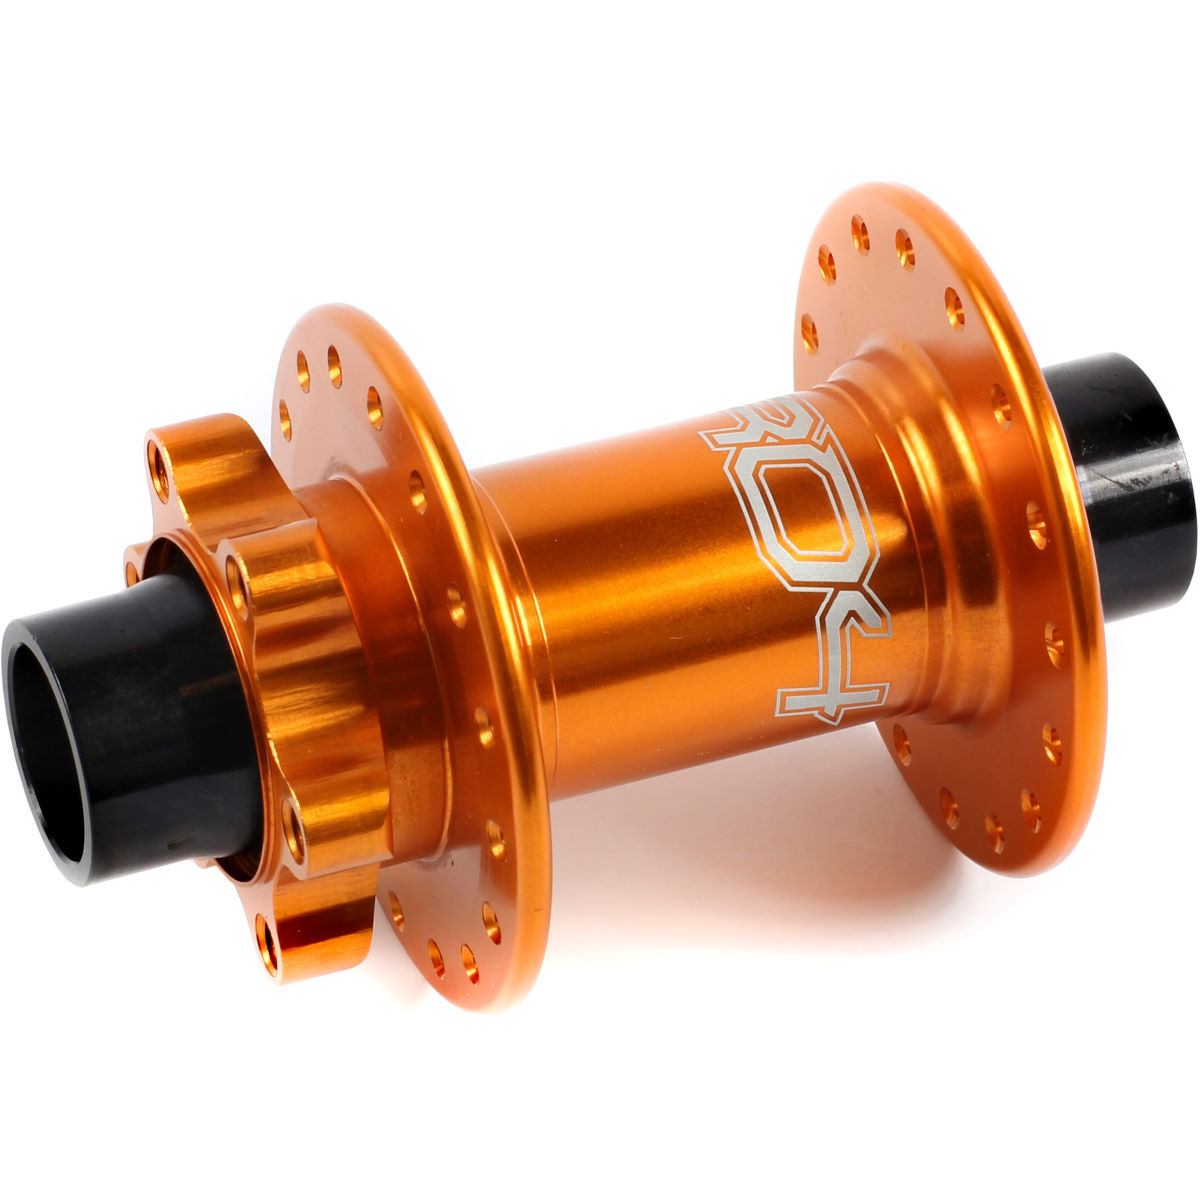 Moyeu avant VTT Hope Pro 4 (axe 20 mm) - 32h - 20mm Axle Orange